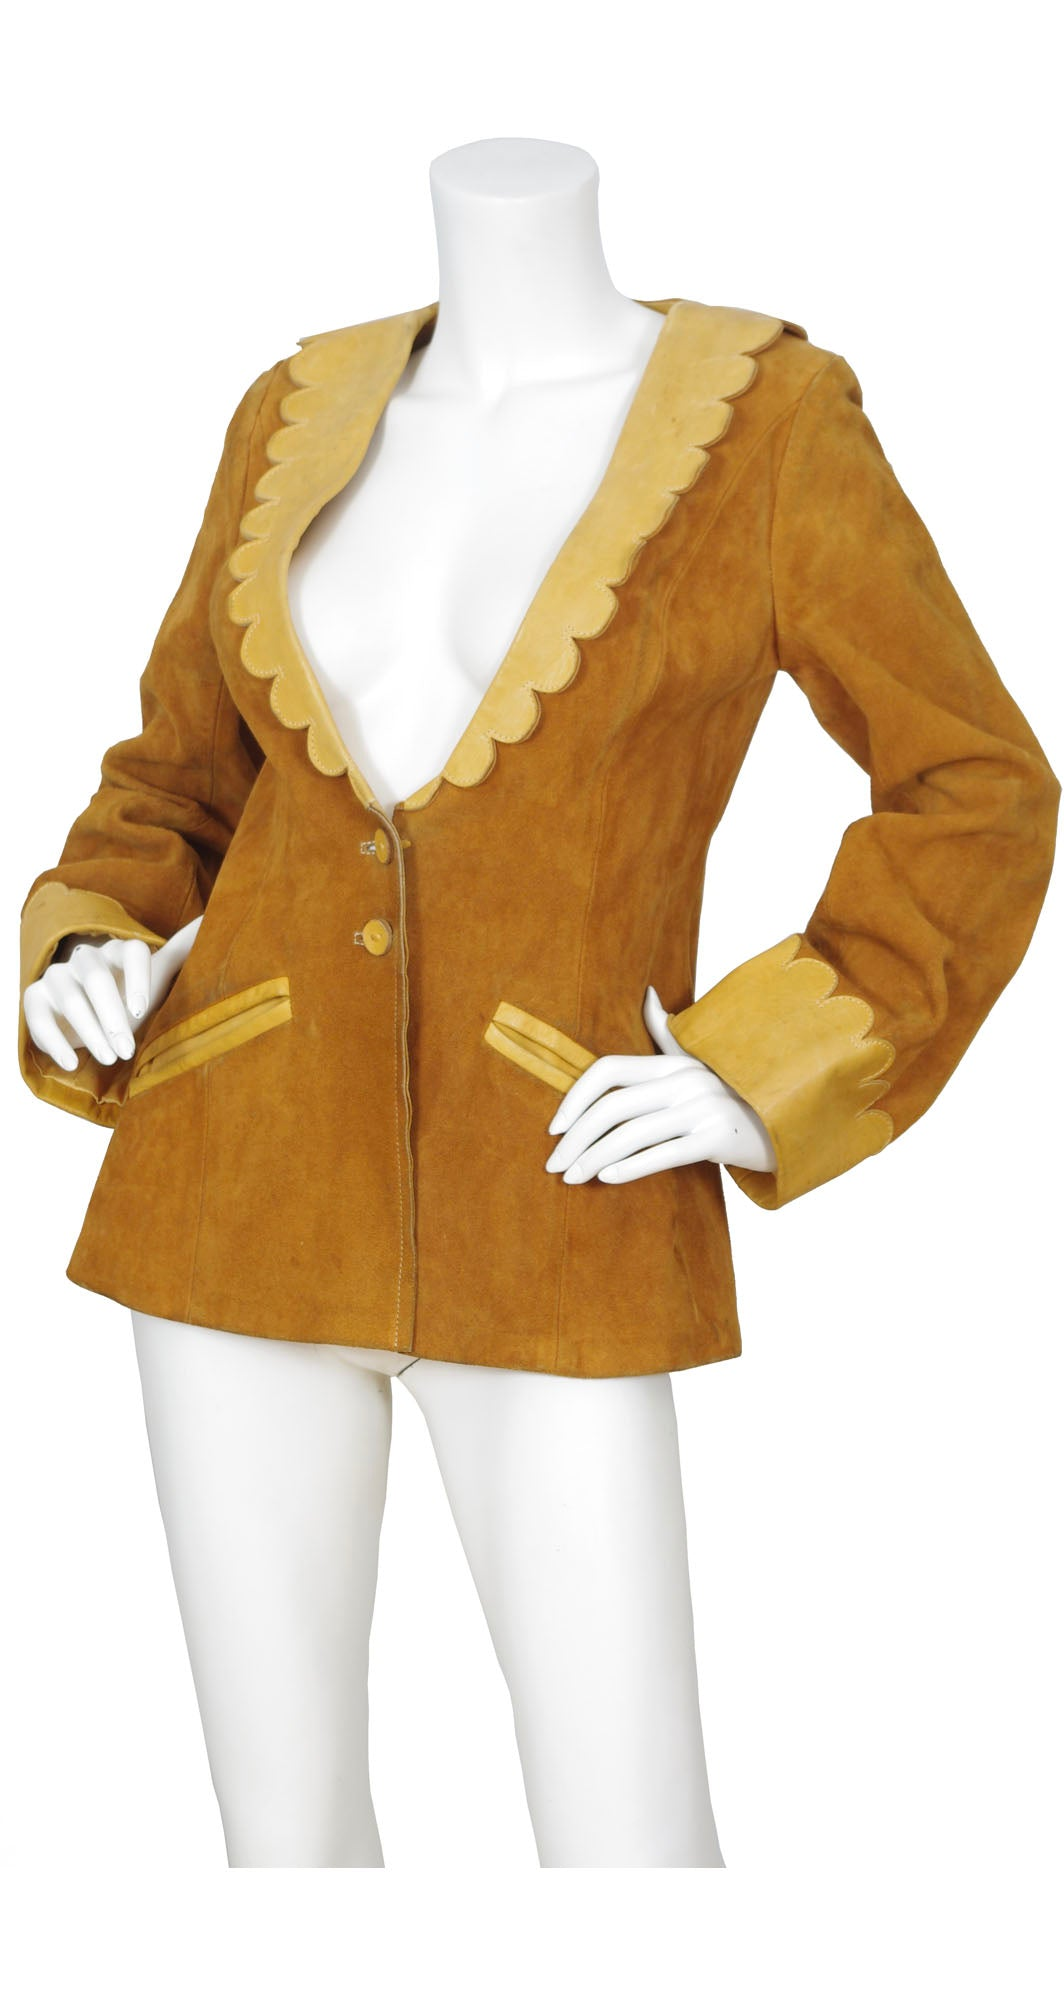 1970s Brown Suede & Scalloped Leather Jacket